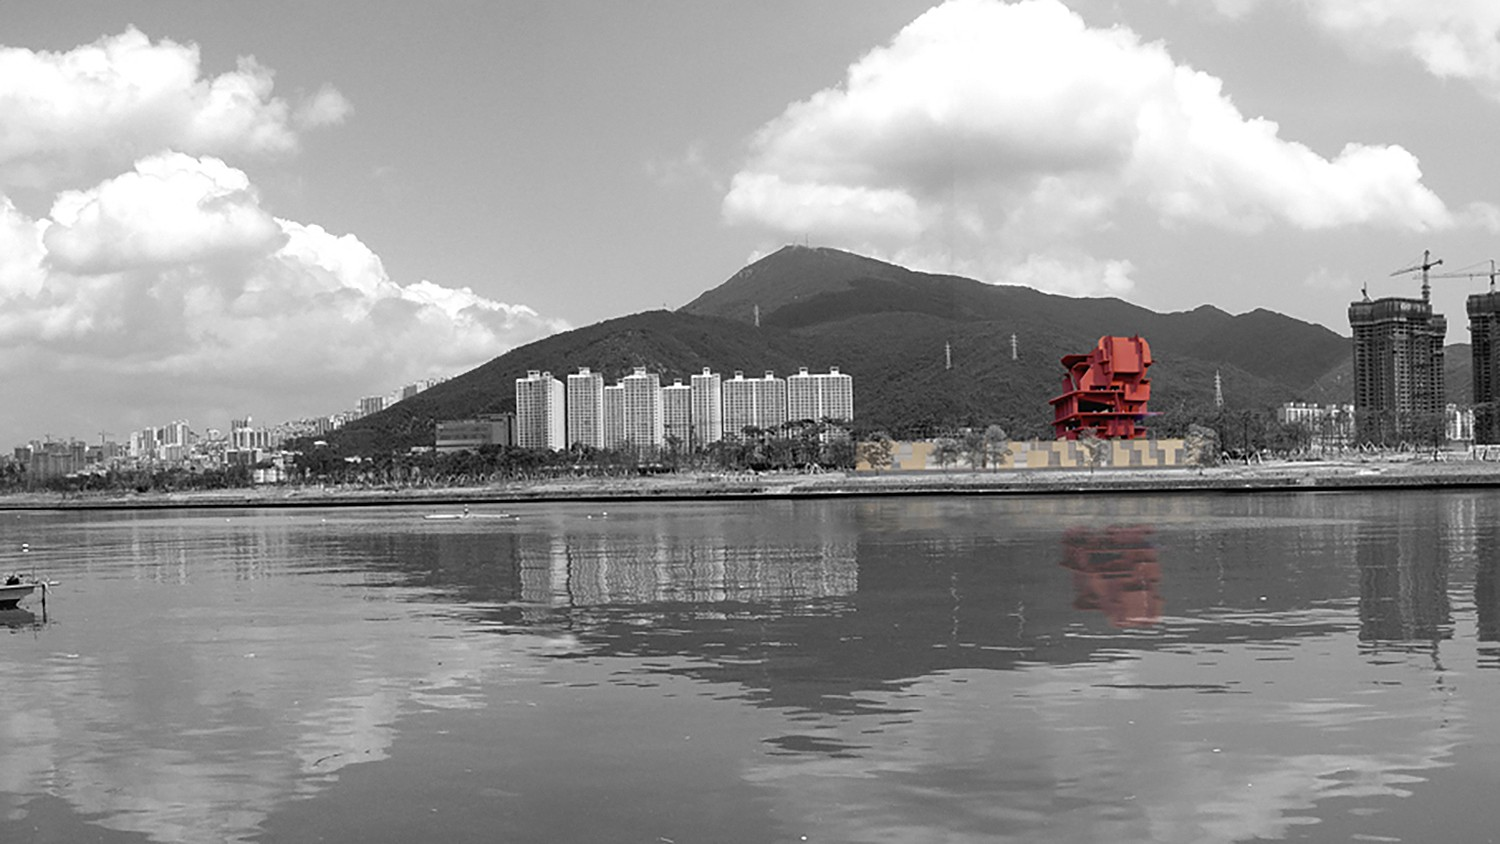 https://s3.us-east-2.amazonaws.com/steven-holl/uploads/projects/project-images/StevenHollArchitects_Busan_RiverView_WH.jpg